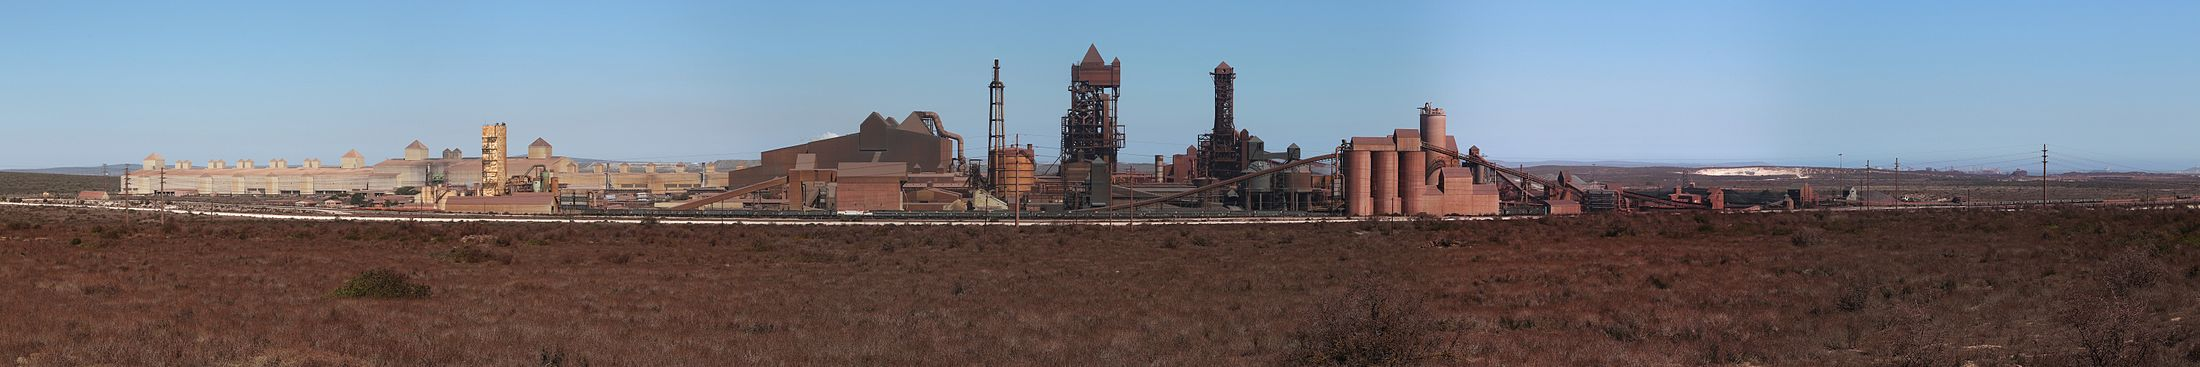 Saldanha South Africa  city images : The story of Saldanha Works | Thinksteel ArcelorMittal South Africa ...